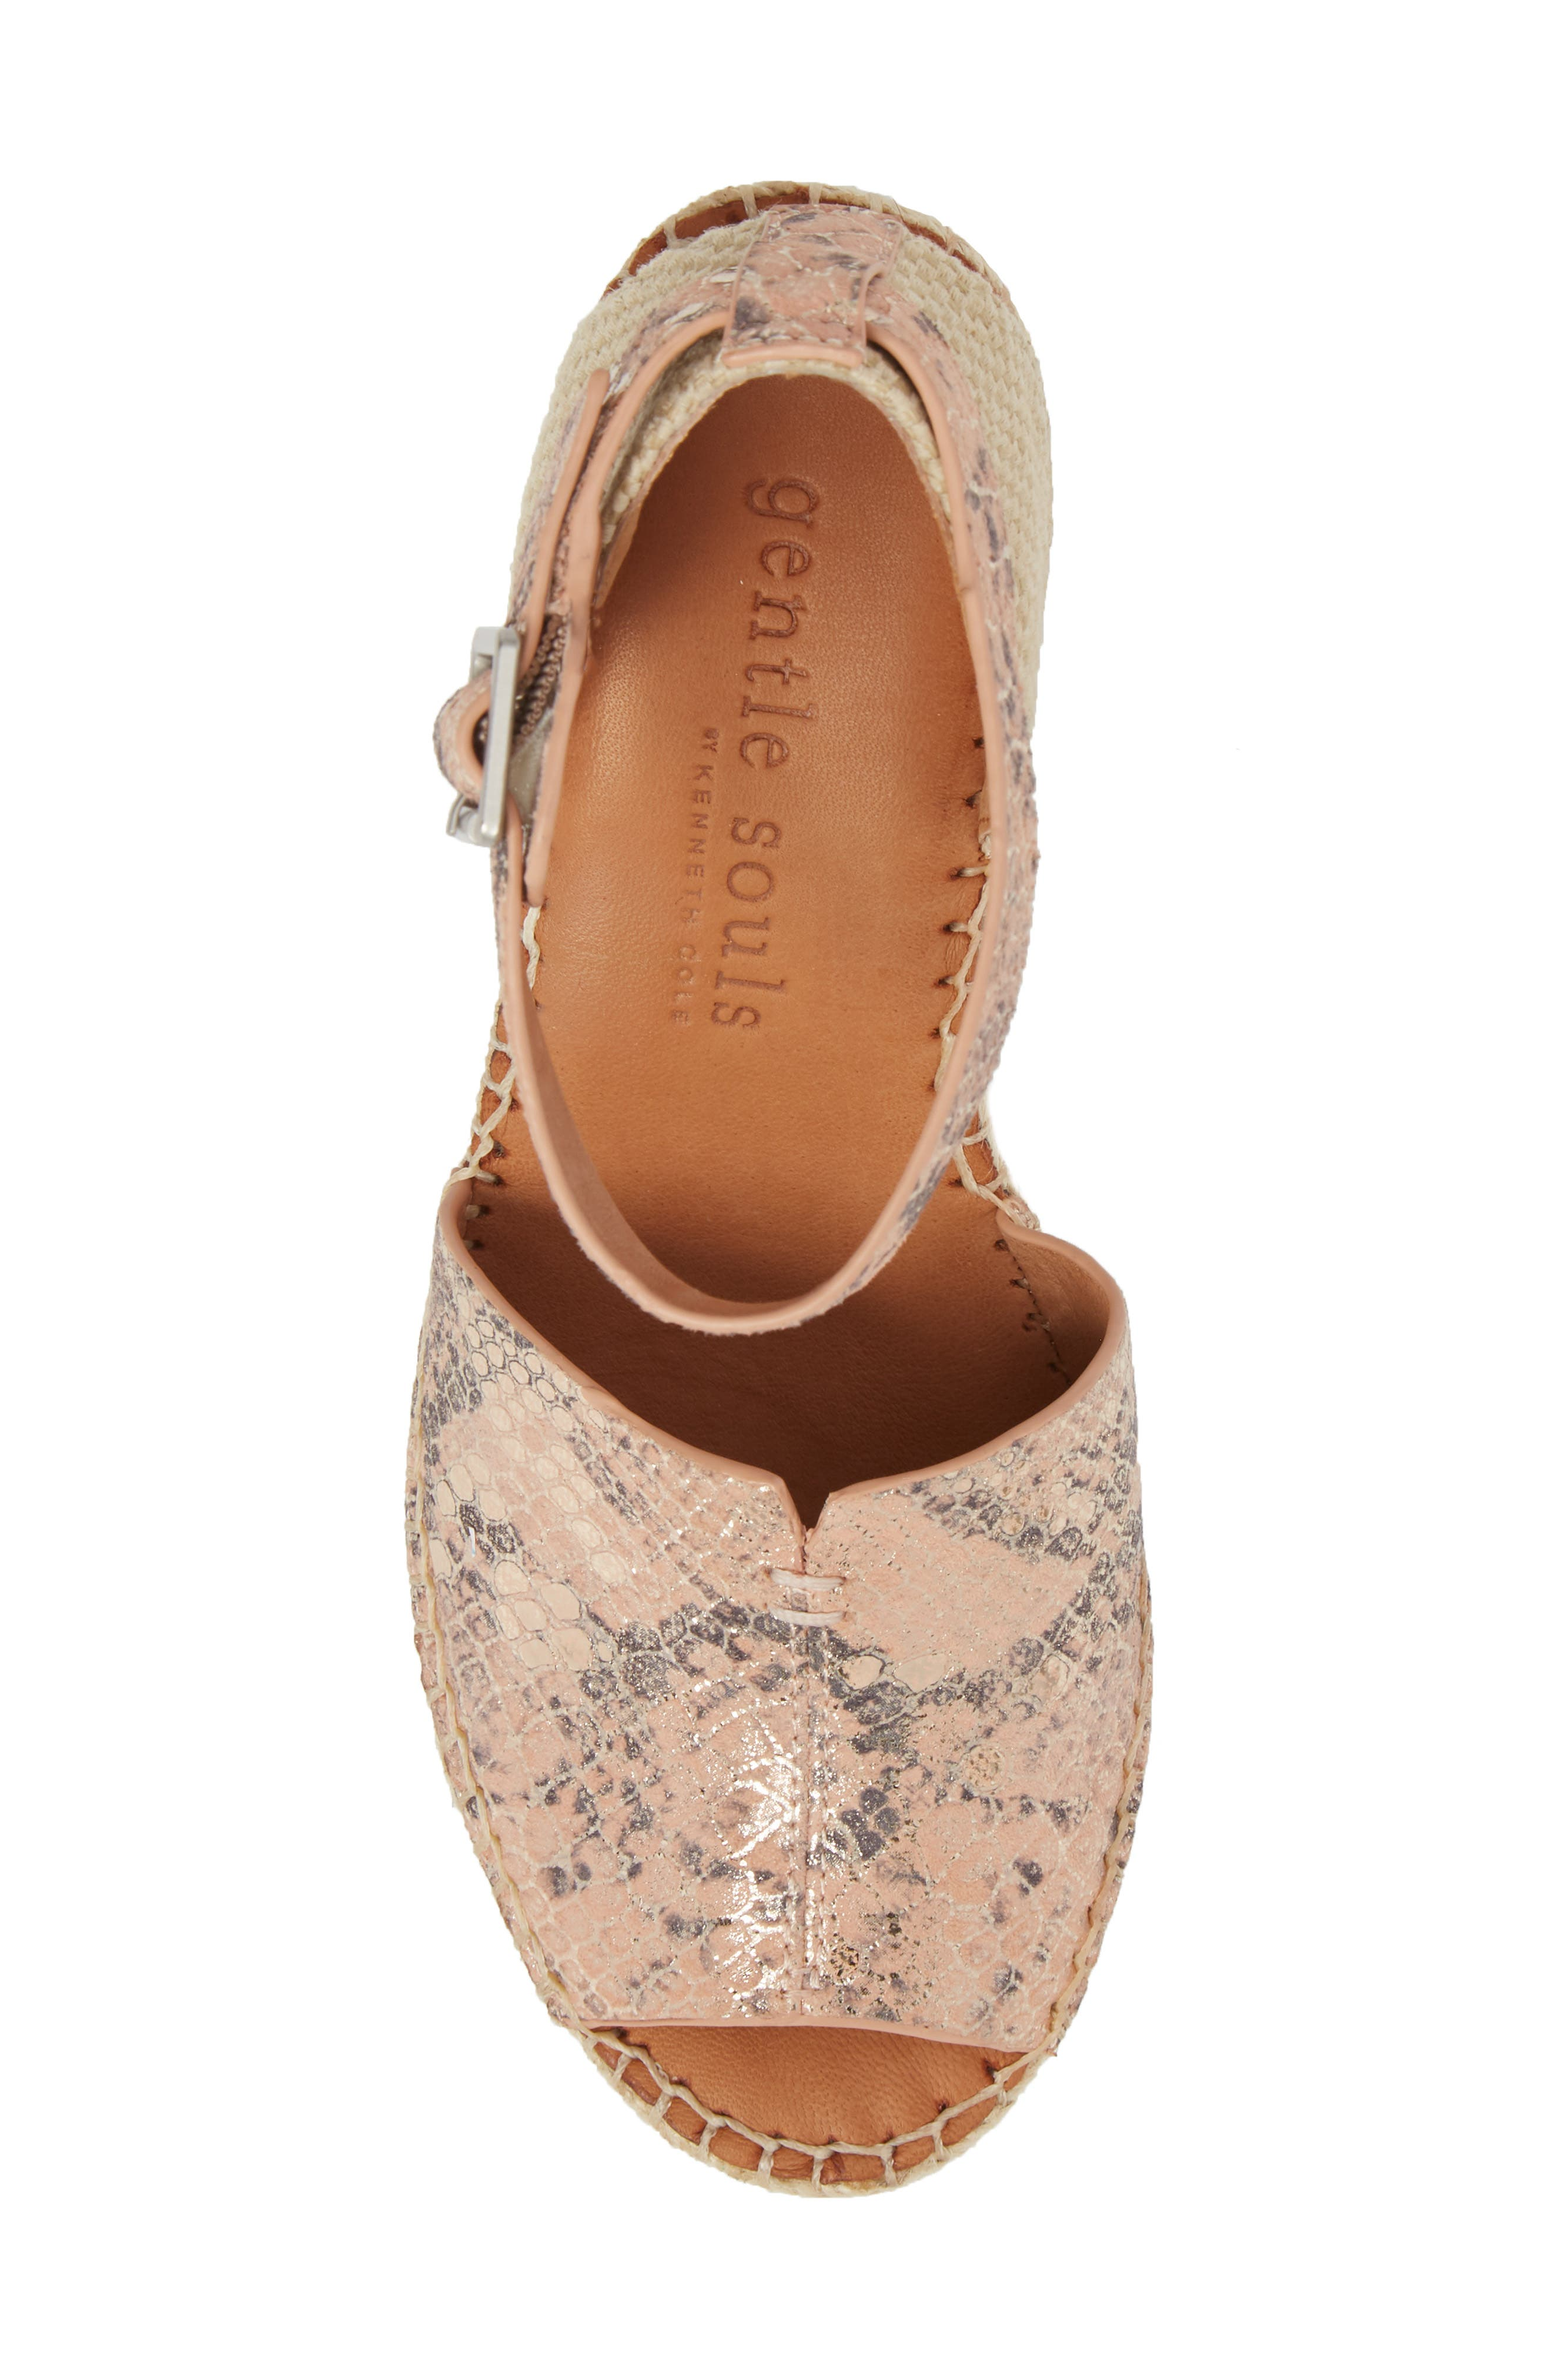 GENTLE SOULS BY KENNETH COLE, Charli Espadrille Wedge, Alternate thumbnail 5, color, ROSE METALLIC LEATHER